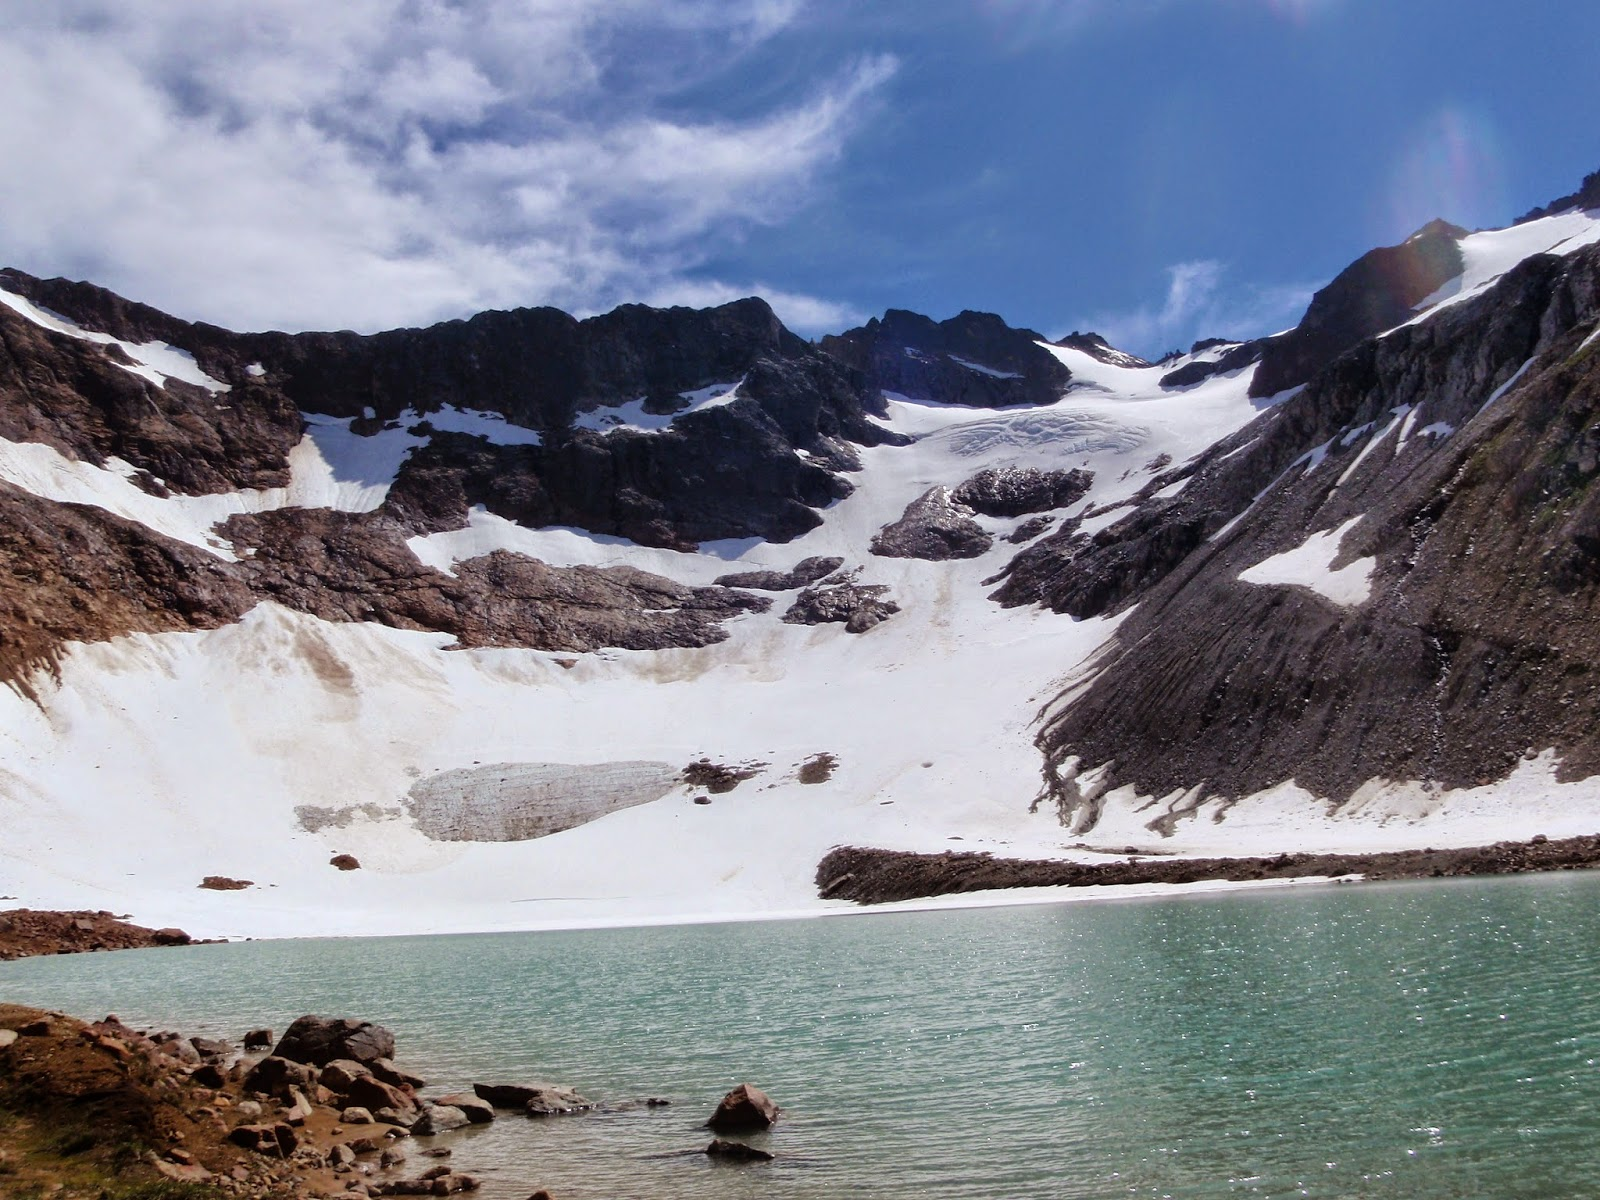 Lyman Glacier from Upper Lyman Lake @ Glacier Peak Wilderness